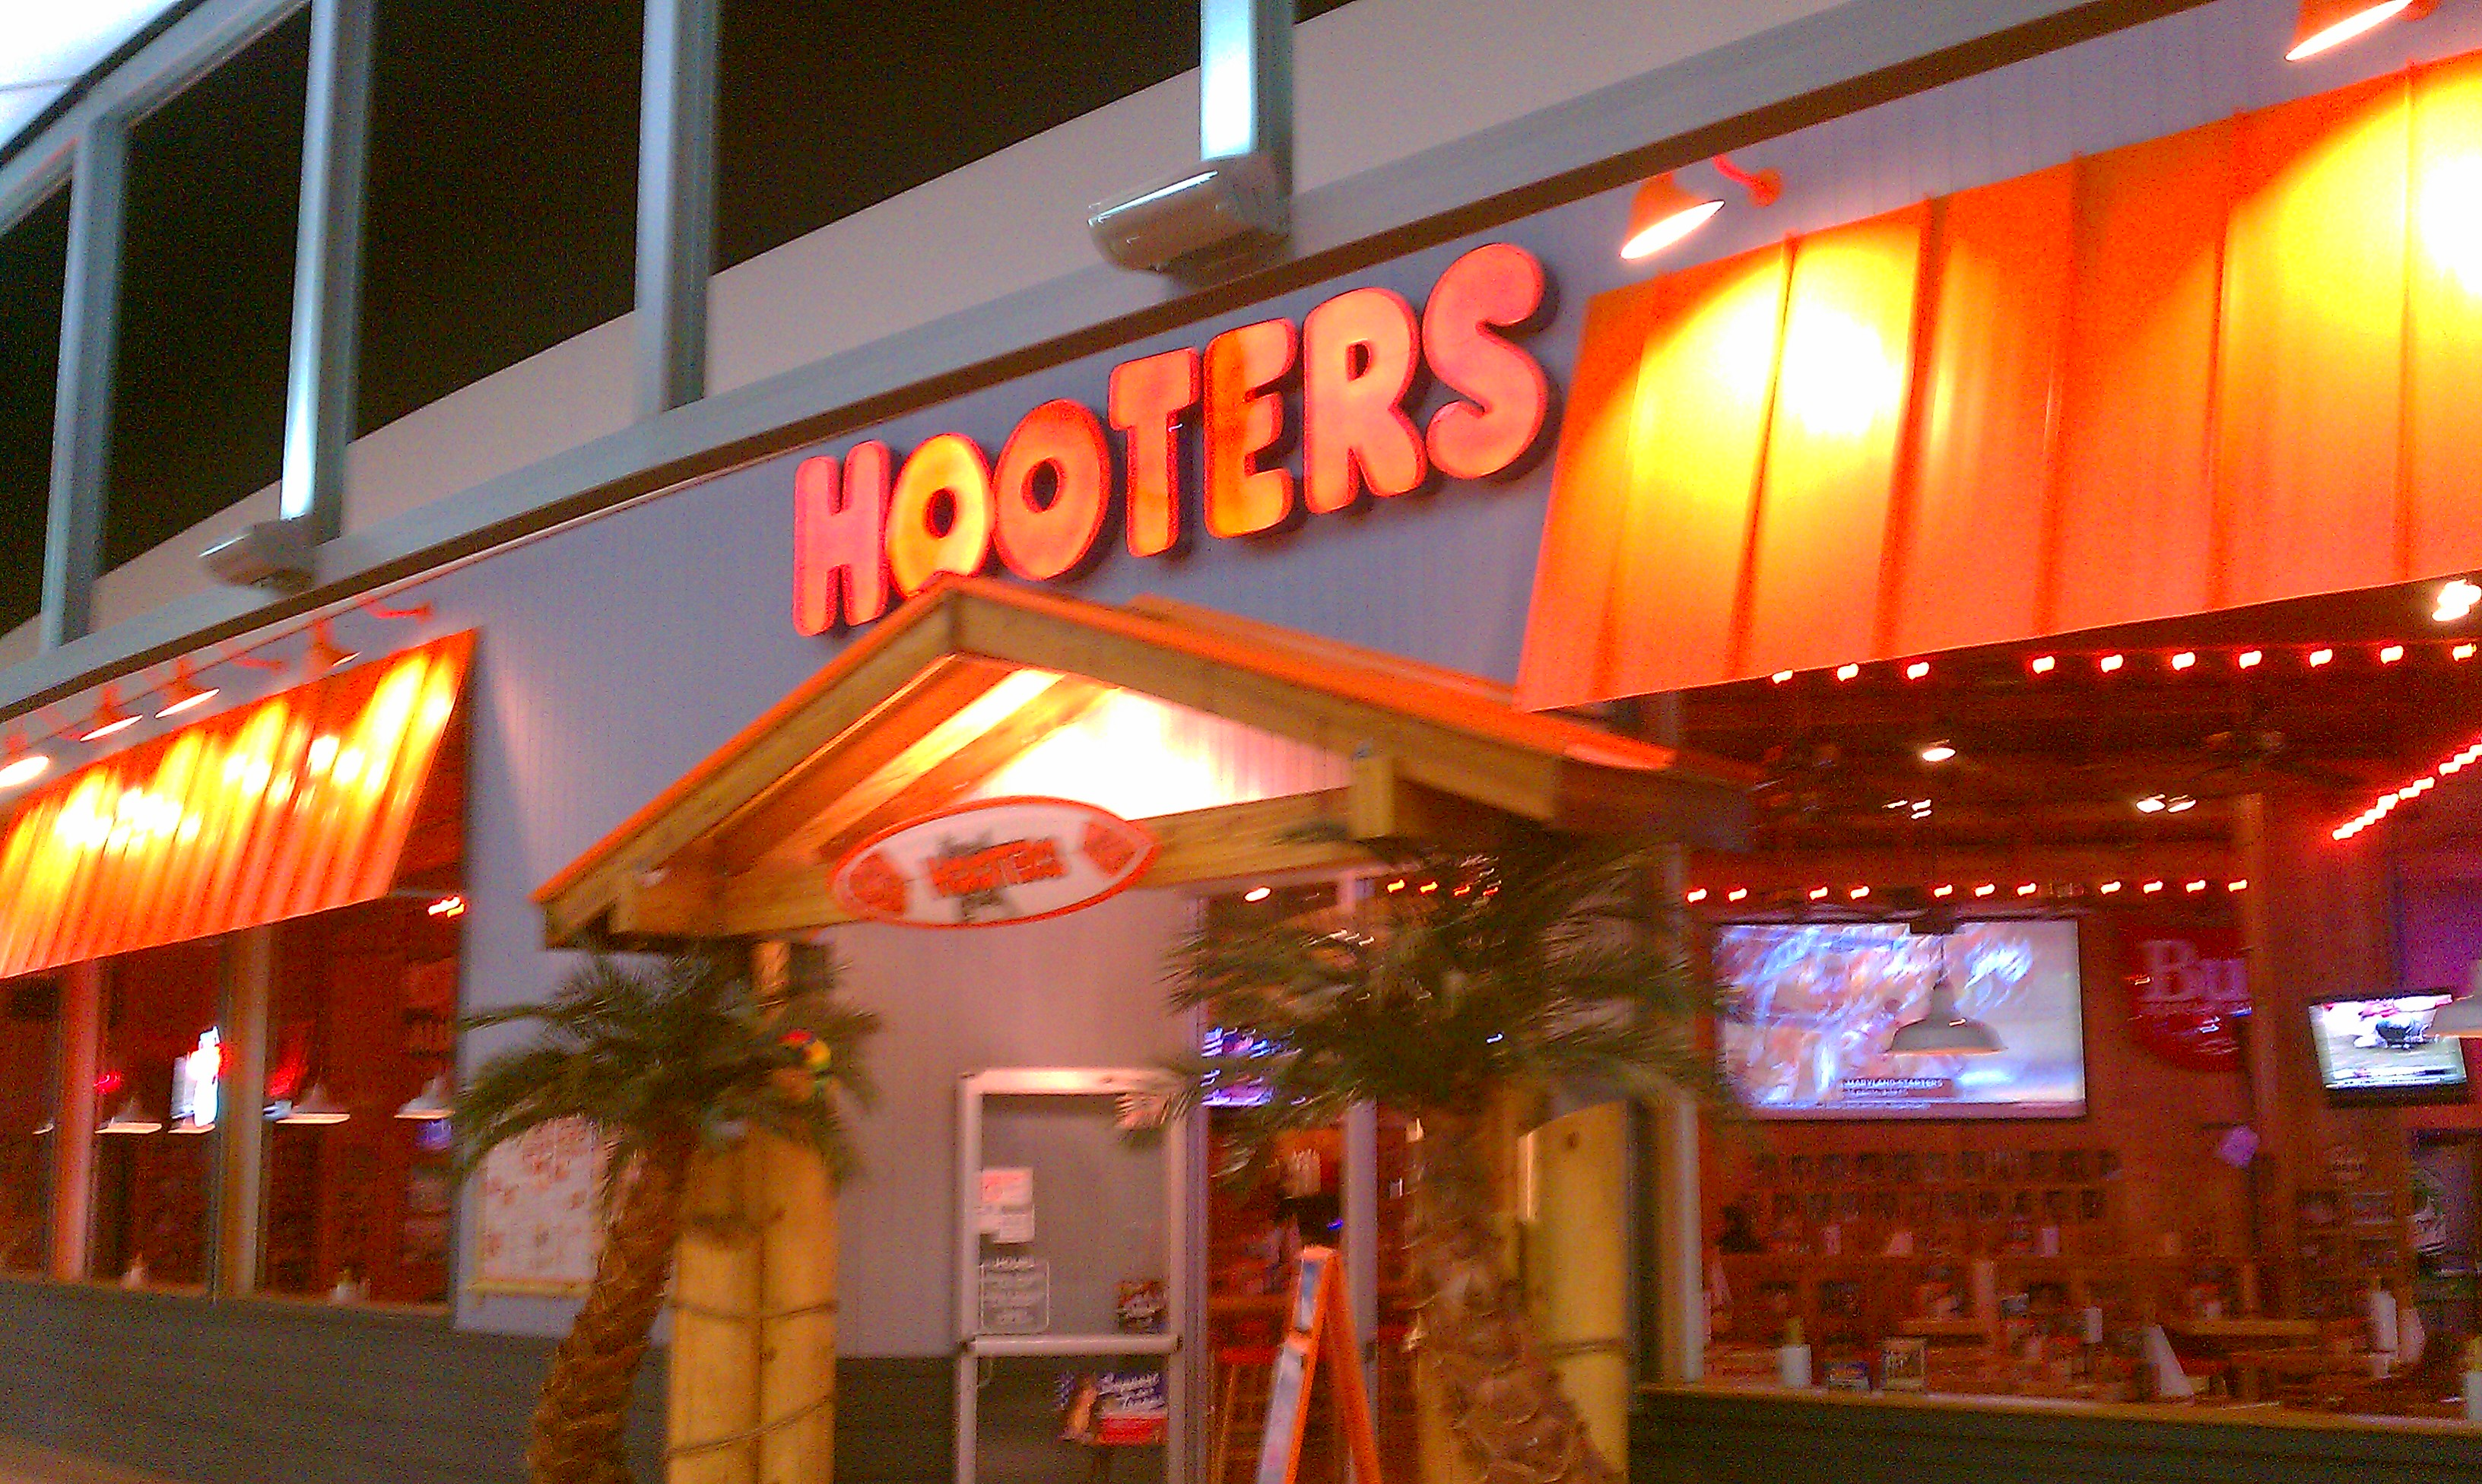 hooters restaurant Xvideos hooters videos, free xvideoscom - the best free porn videos on internet, 100% free.